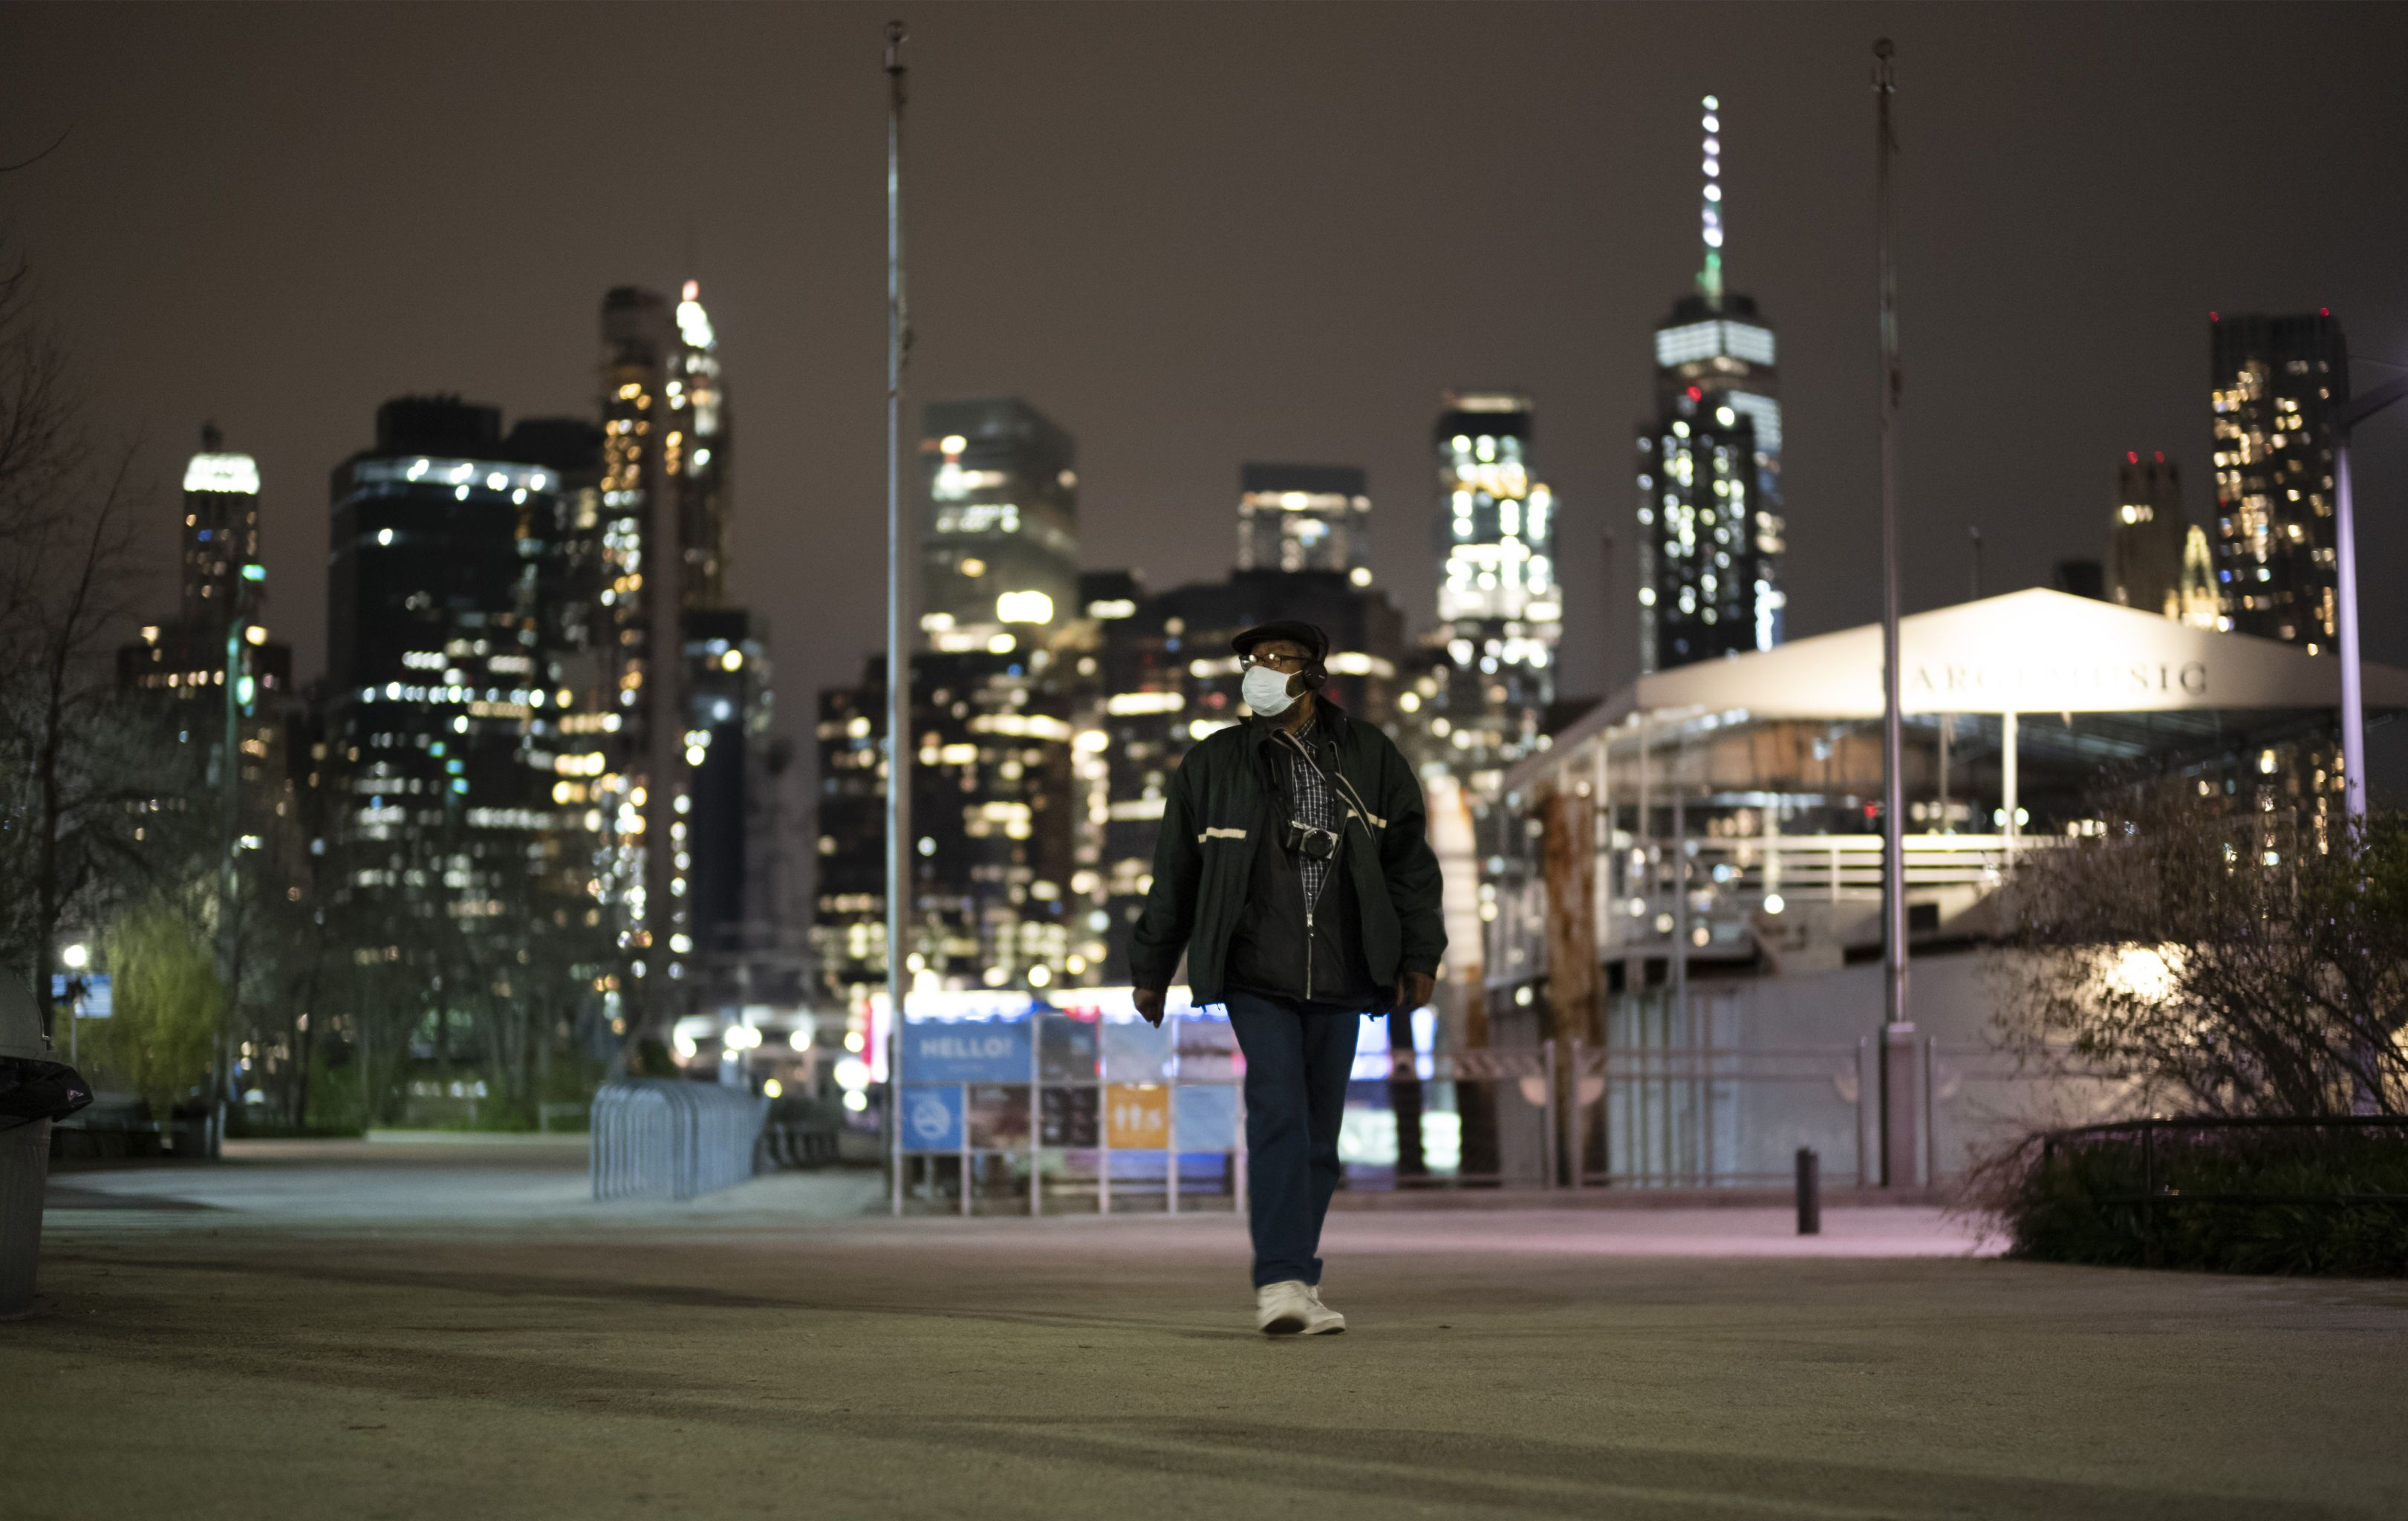 A man wearing a mask walks through Brooklyn Bridge Park, Tuesday night, April 14, 2020 during the coronavirus pandemic in New York. Known as The City That Never Sleeps, New York's streets are particularly empty during the pandemic.